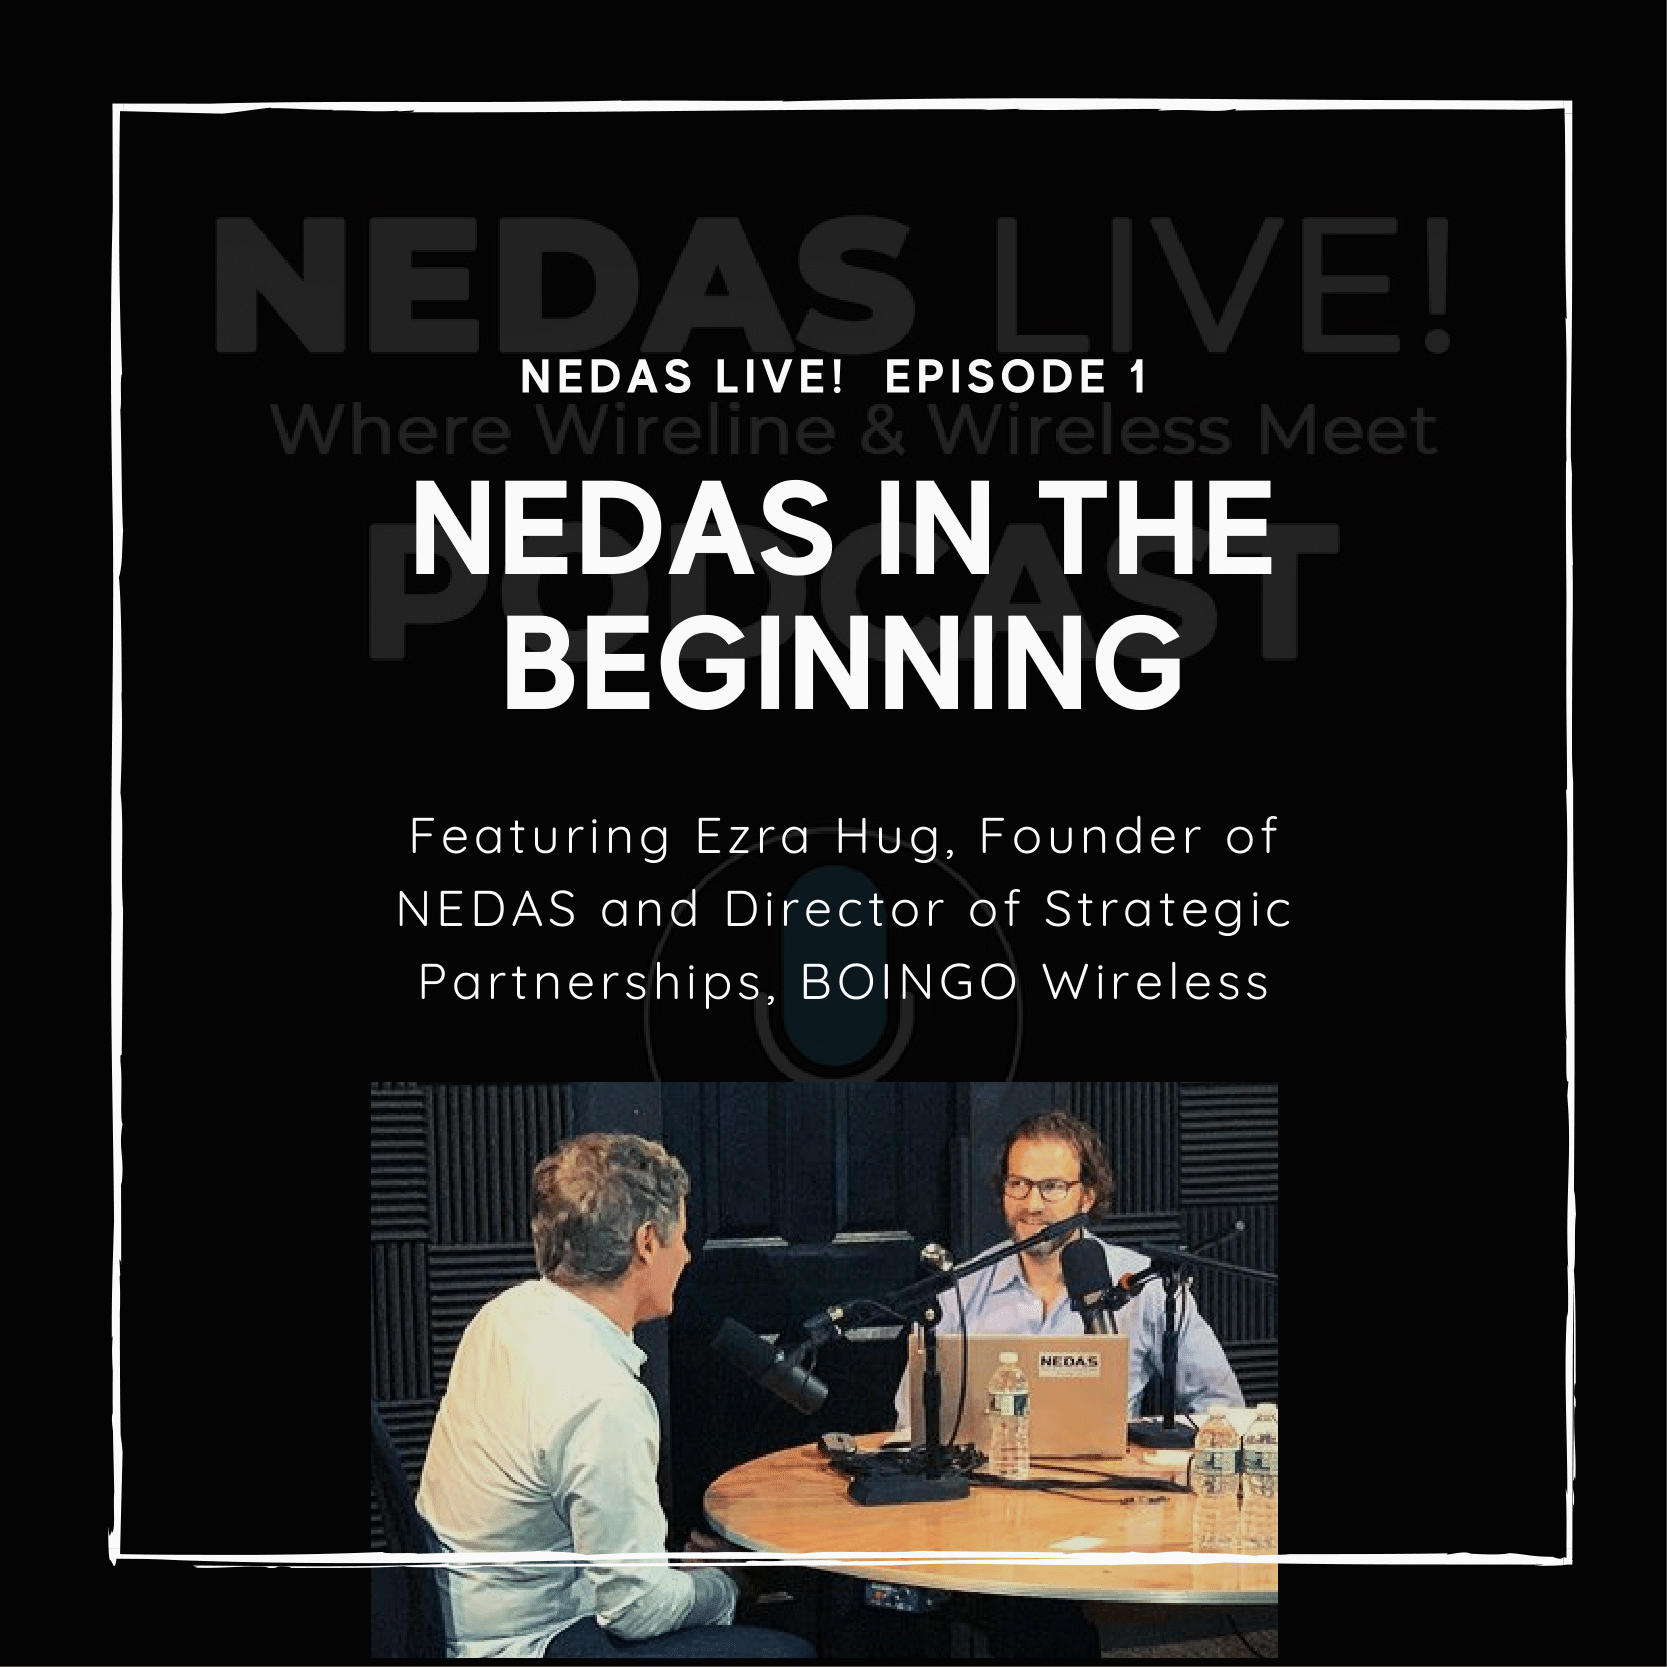 nedas-live-episode-cover-art-4-01